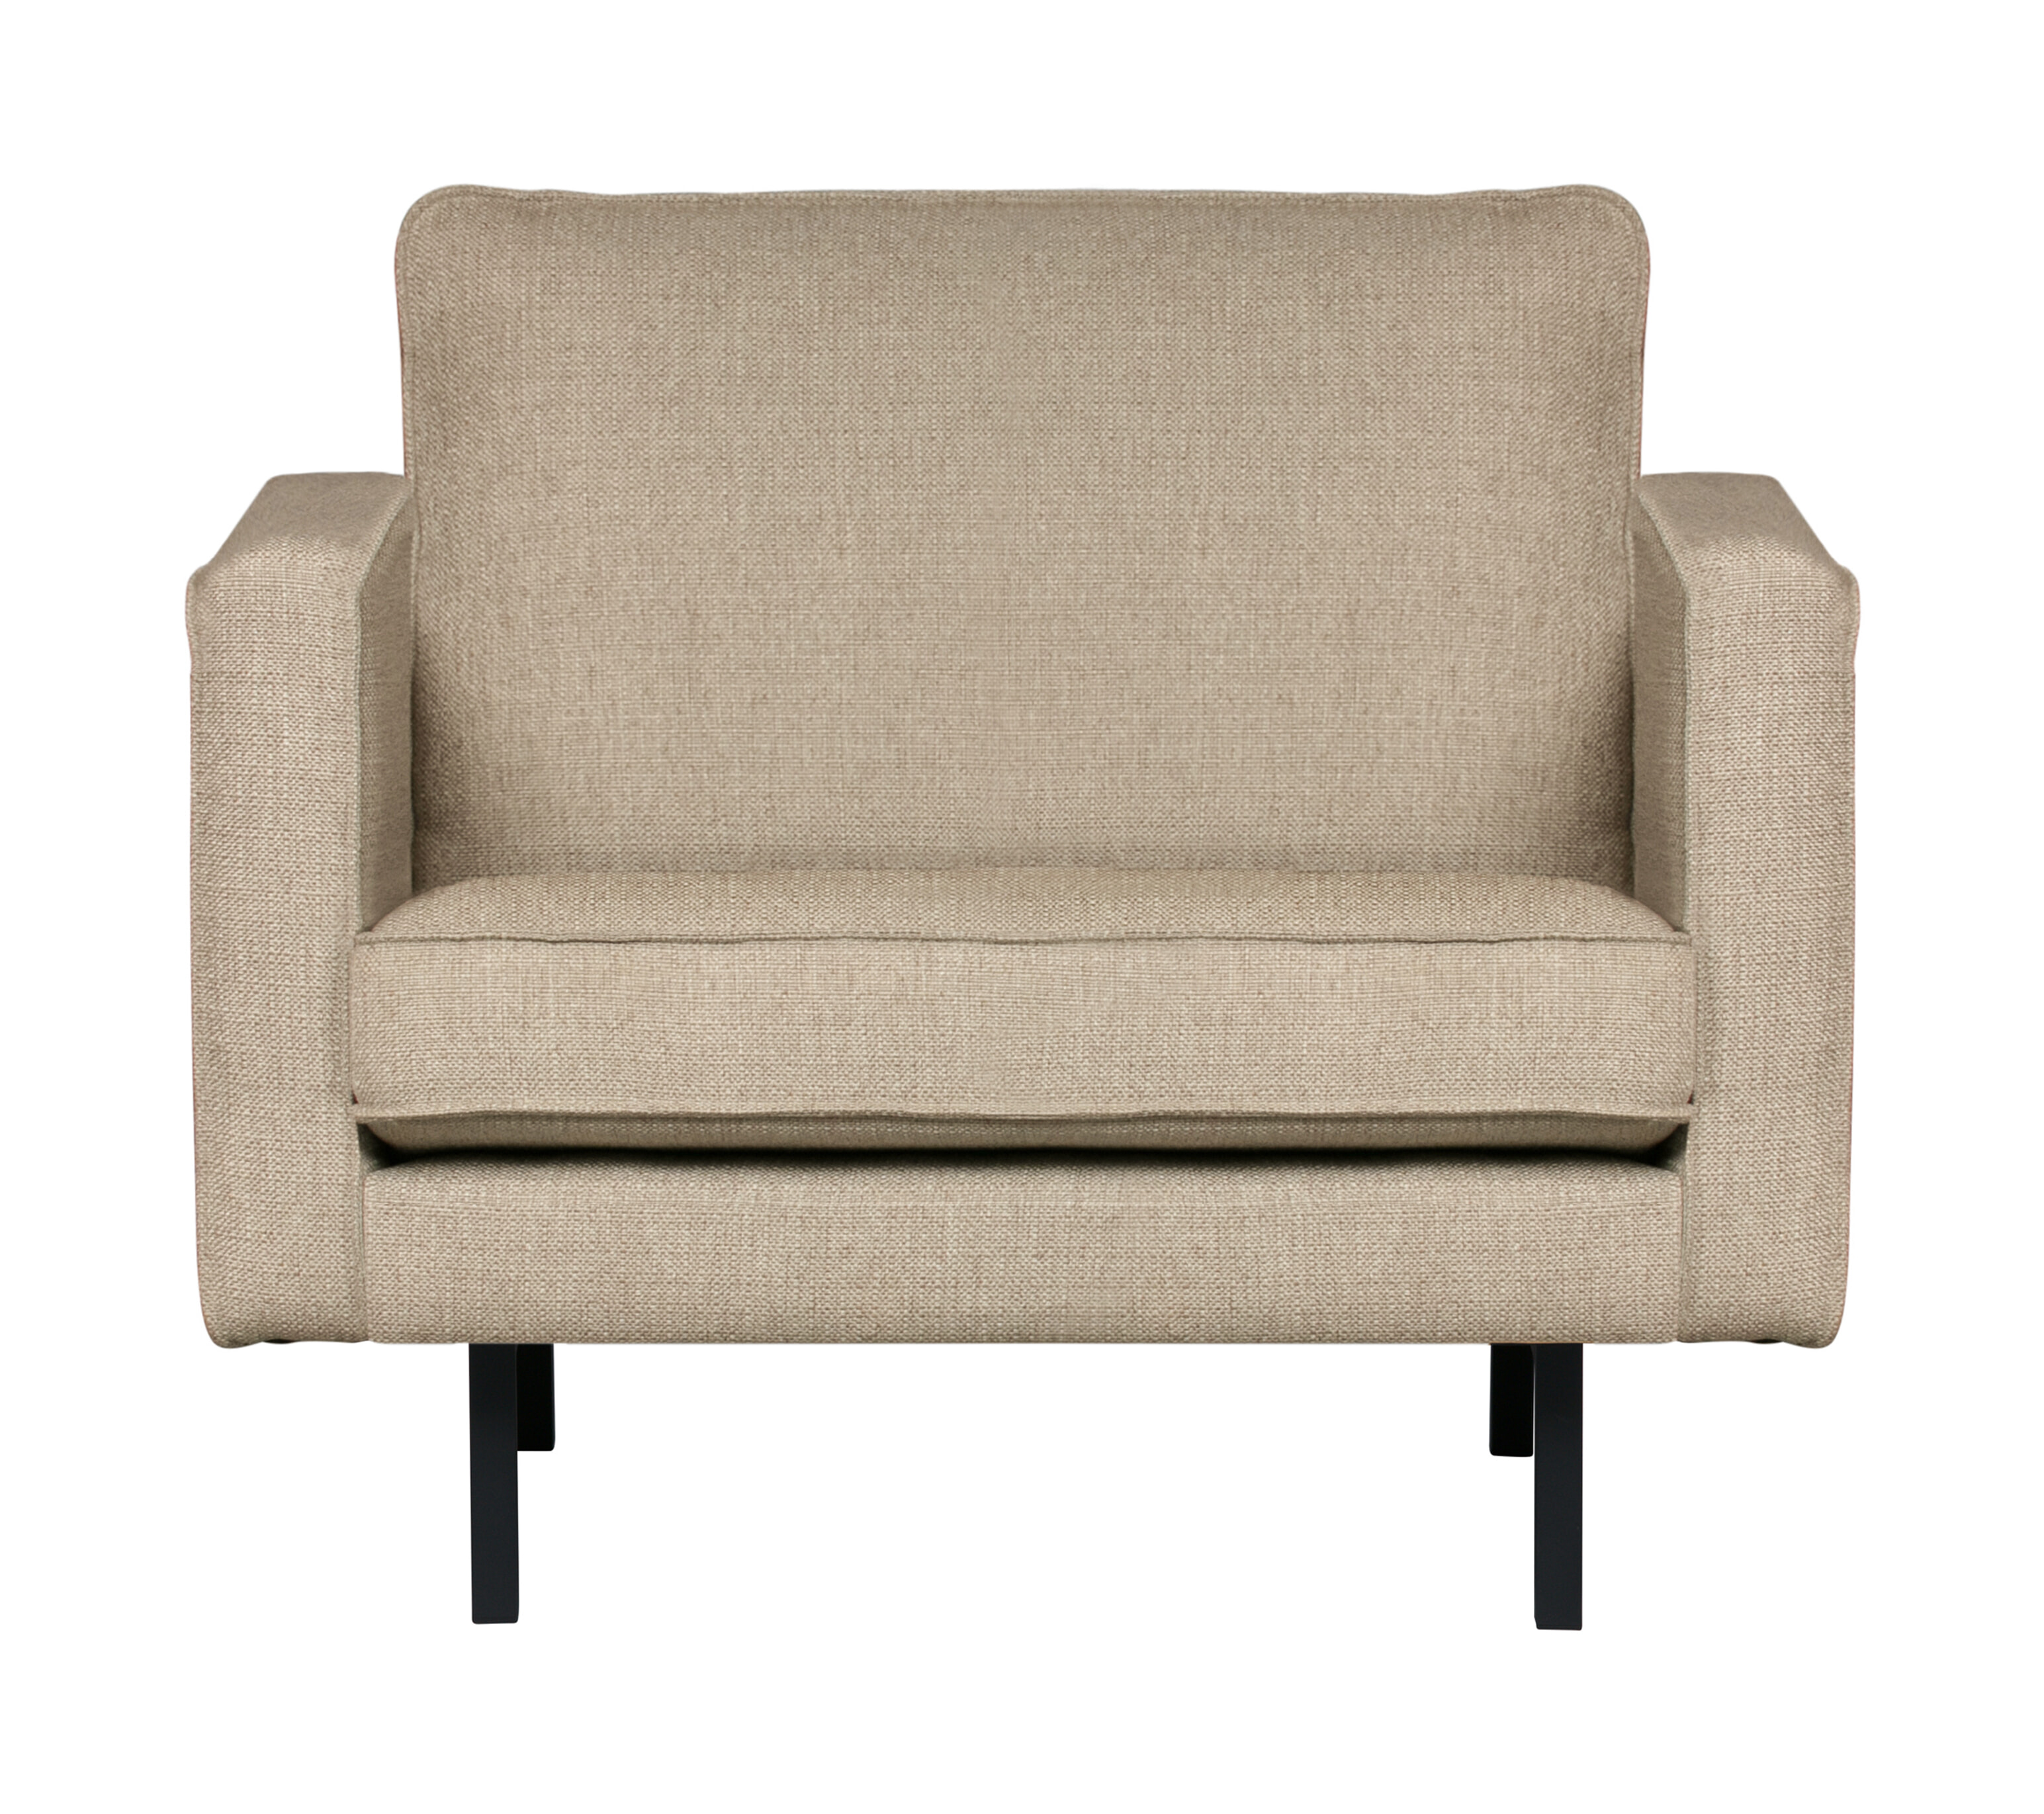 BePureHome Fauteuil 'Rodeo' Stretched, kleur Sahara